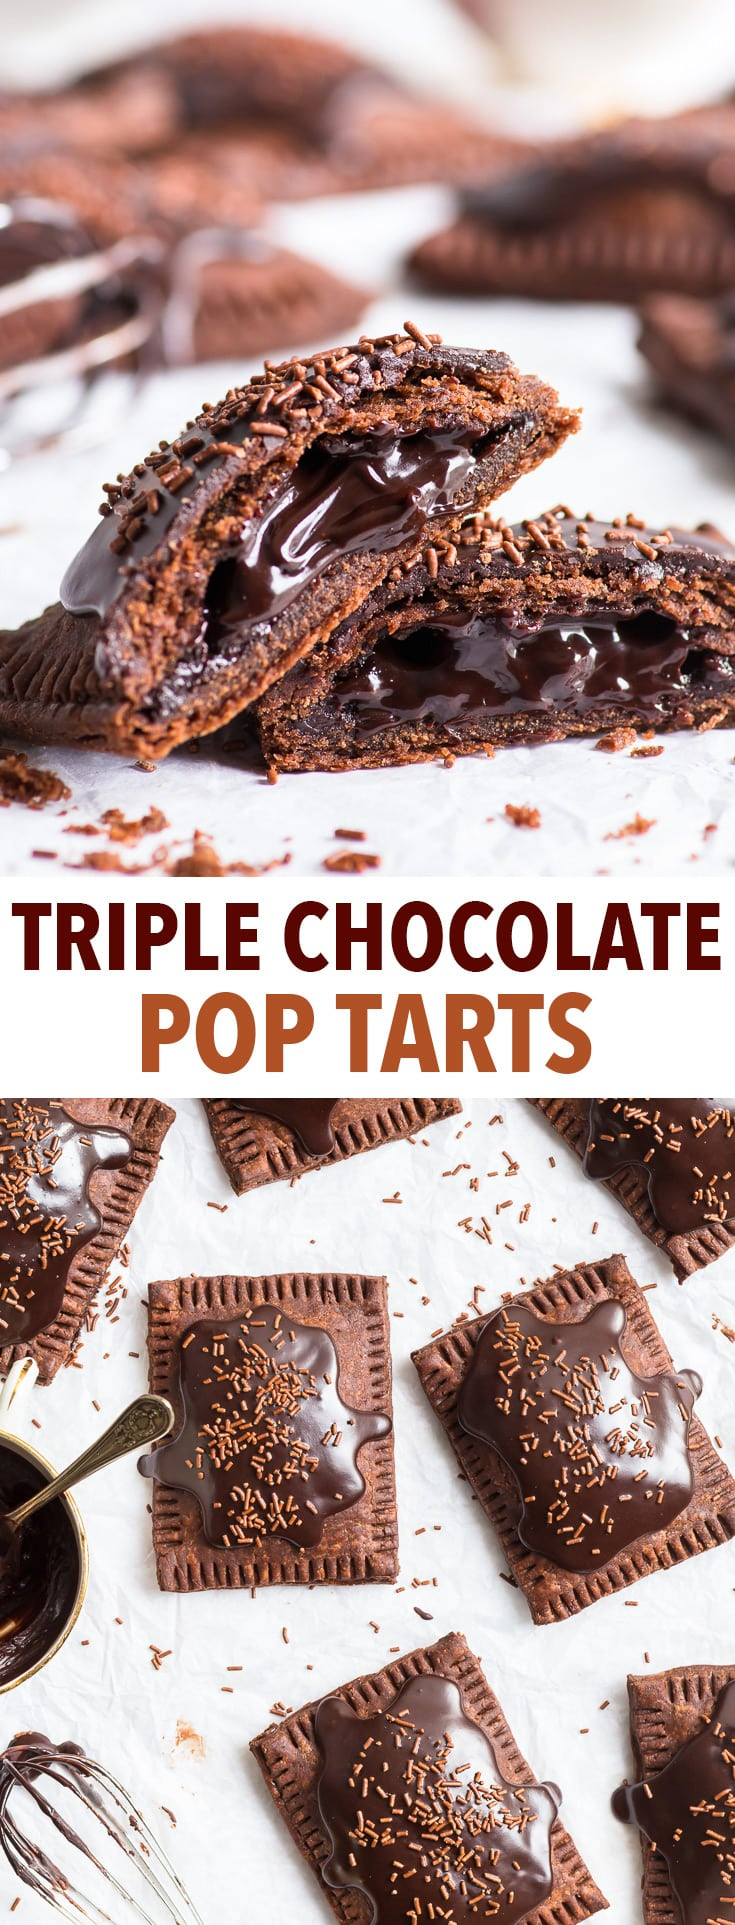 Triple Chocolate Pop Tarts Gluten Free The Loopy Whisk